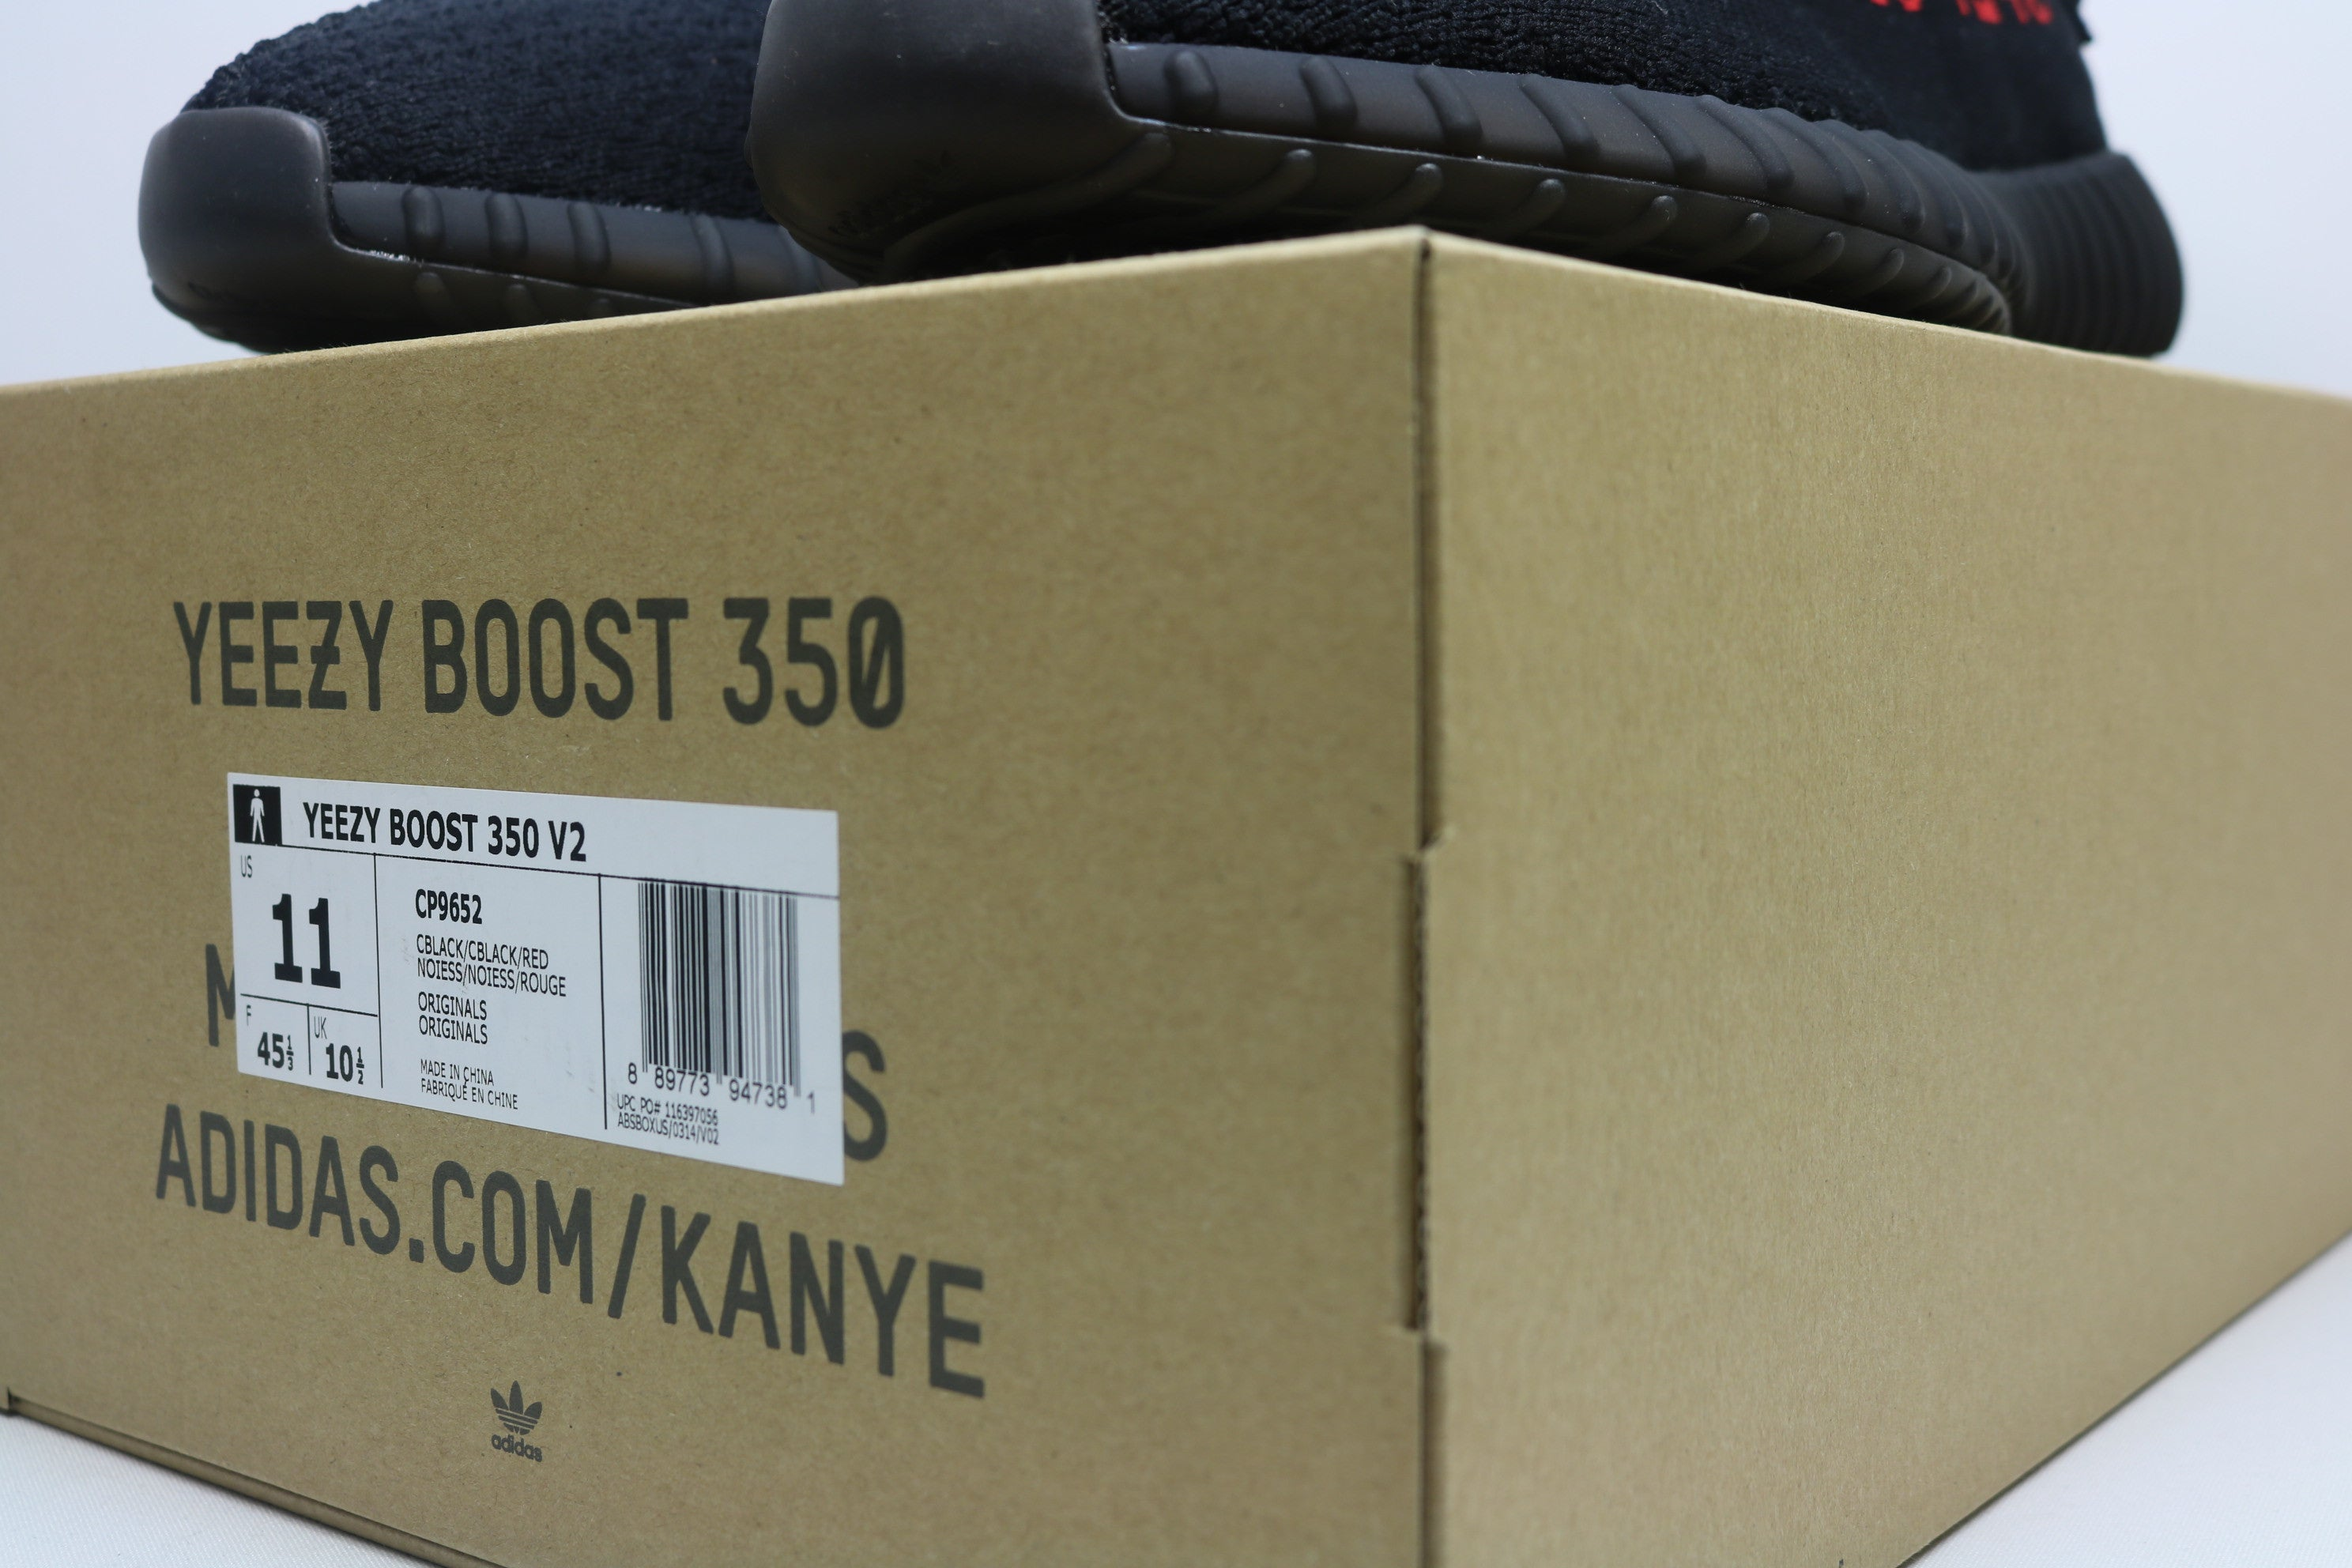 Authentic Yeezy boost 350 V2 official pictures uk Men 's ShOes where